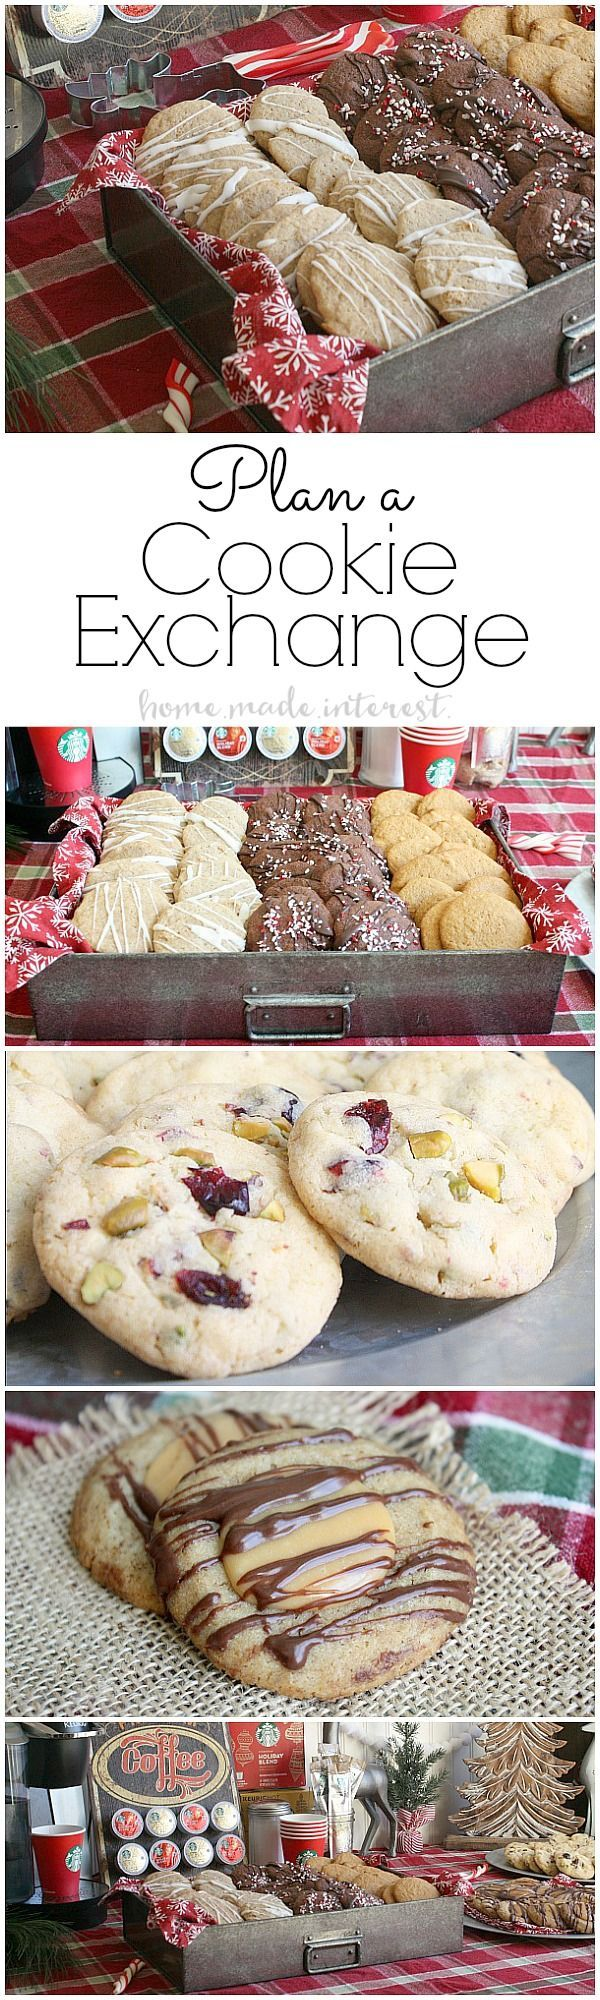 A cookie exchange is a fun way to share holiday cookie recipes. This is what you need to know to plan and host a cookie exchange, and a bonus Starbucks Caramel Macchiato cookie recipe! #MakeItMerrier #holidays #ad